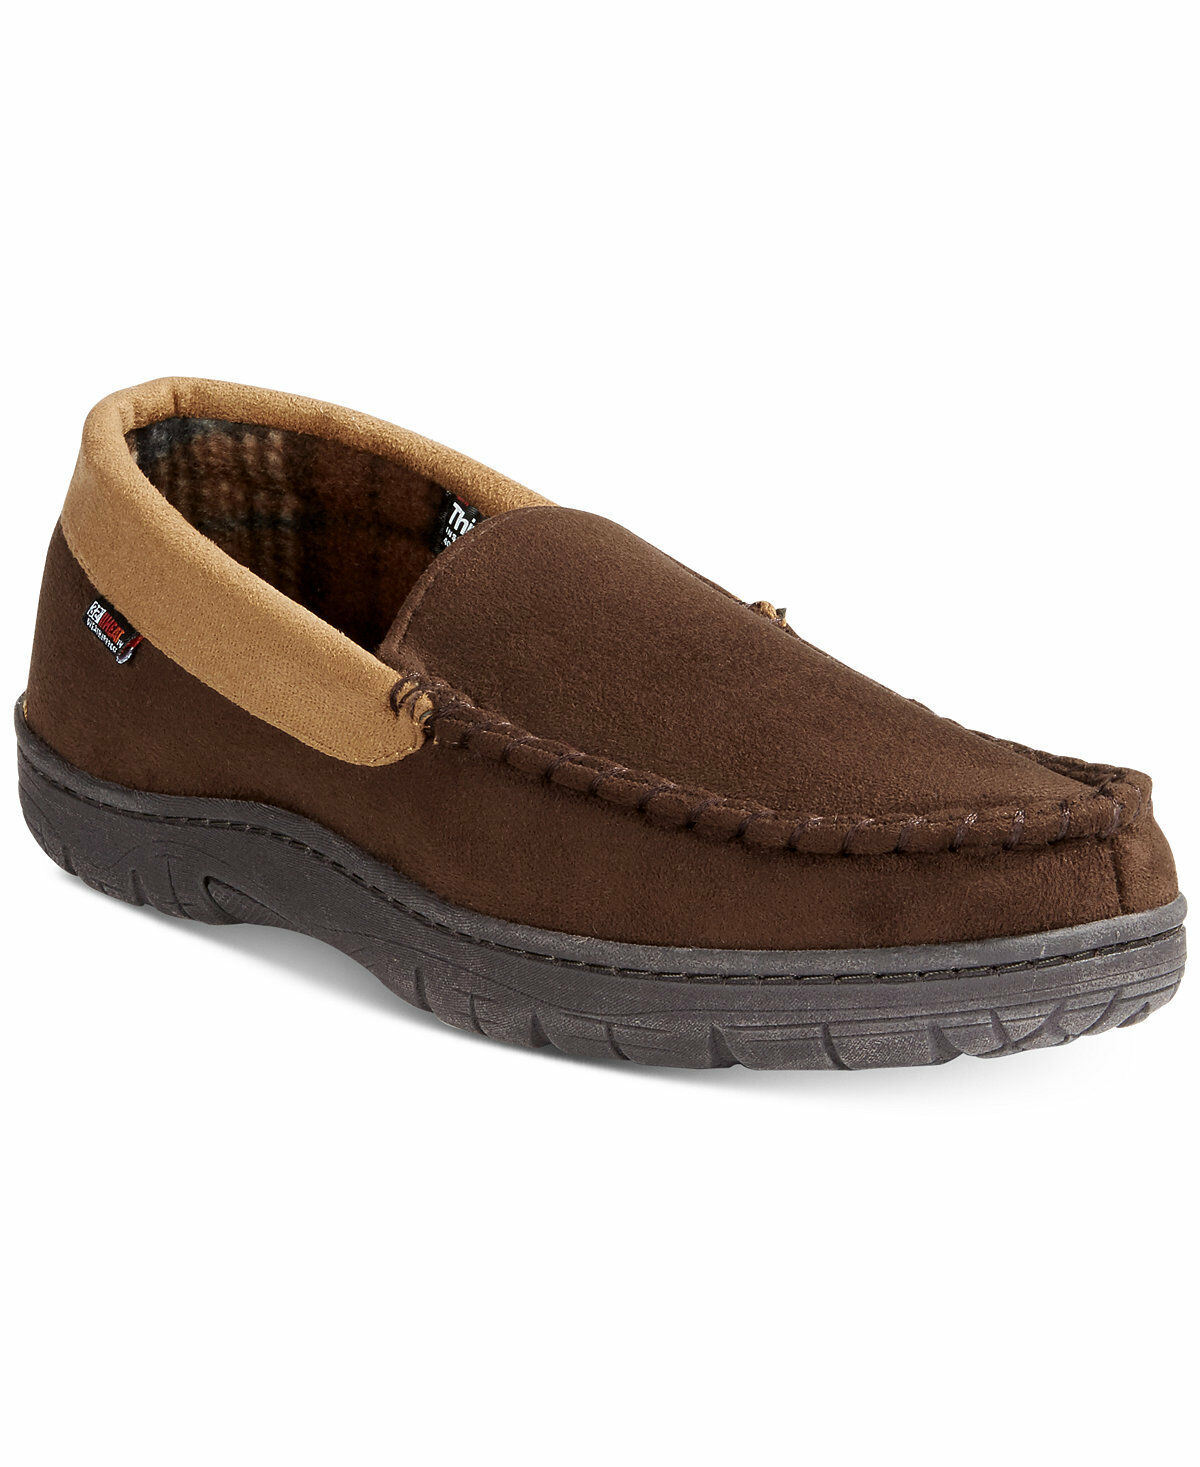 95 32 DEGREES WEATHERPROOF HEAT Men THINSULATE BROWN MOCCASIN SLIPPERS SHOE 8-9